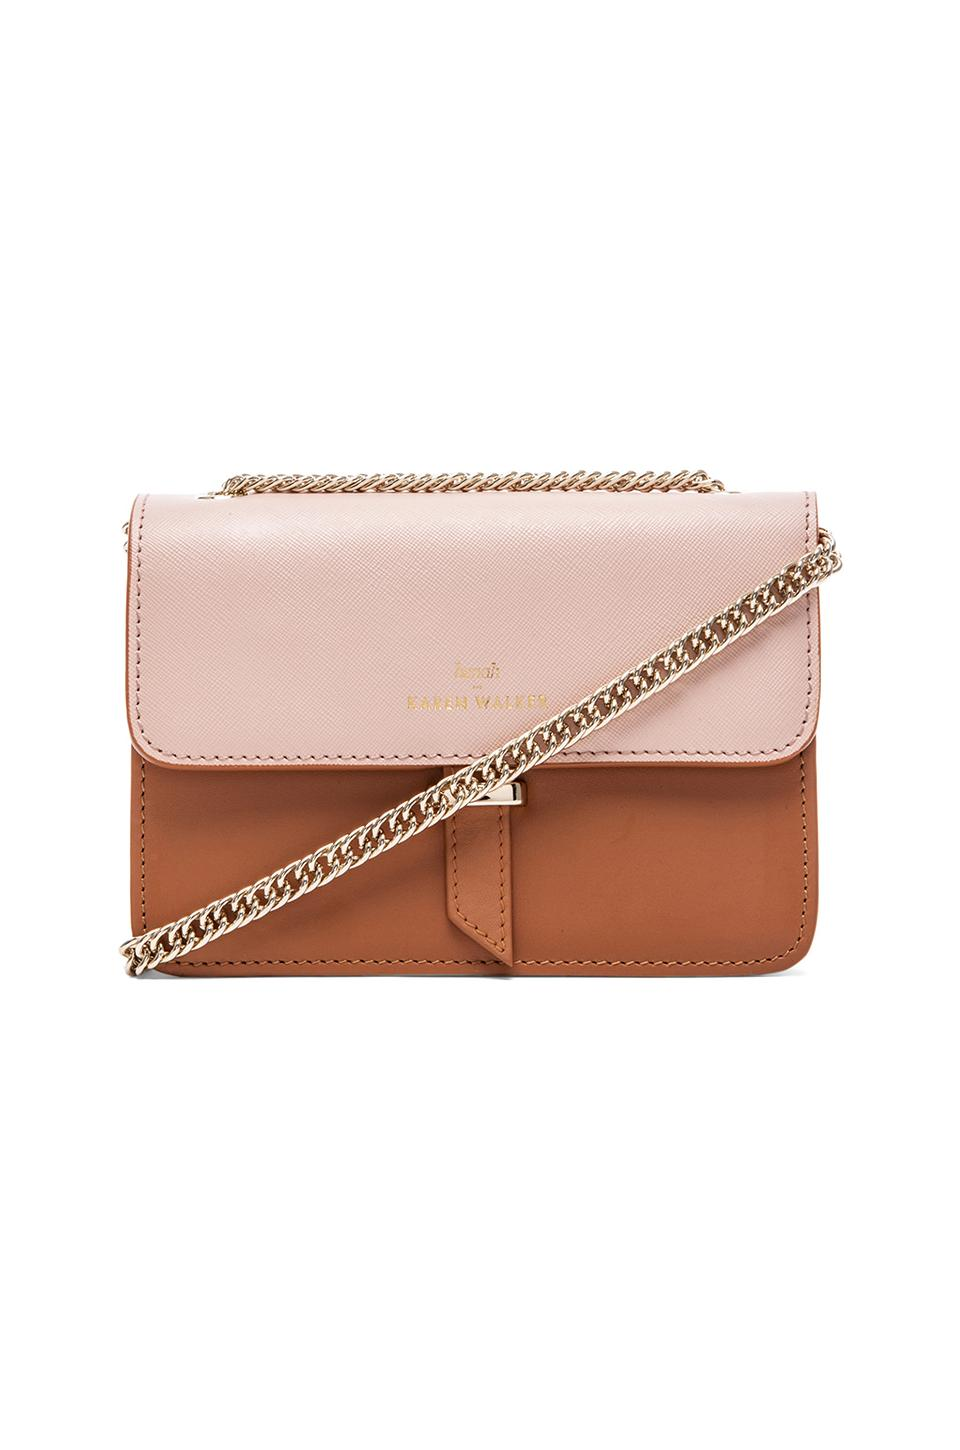 Karen Walker Juliet Mini Chain Bag in Tan & Blush